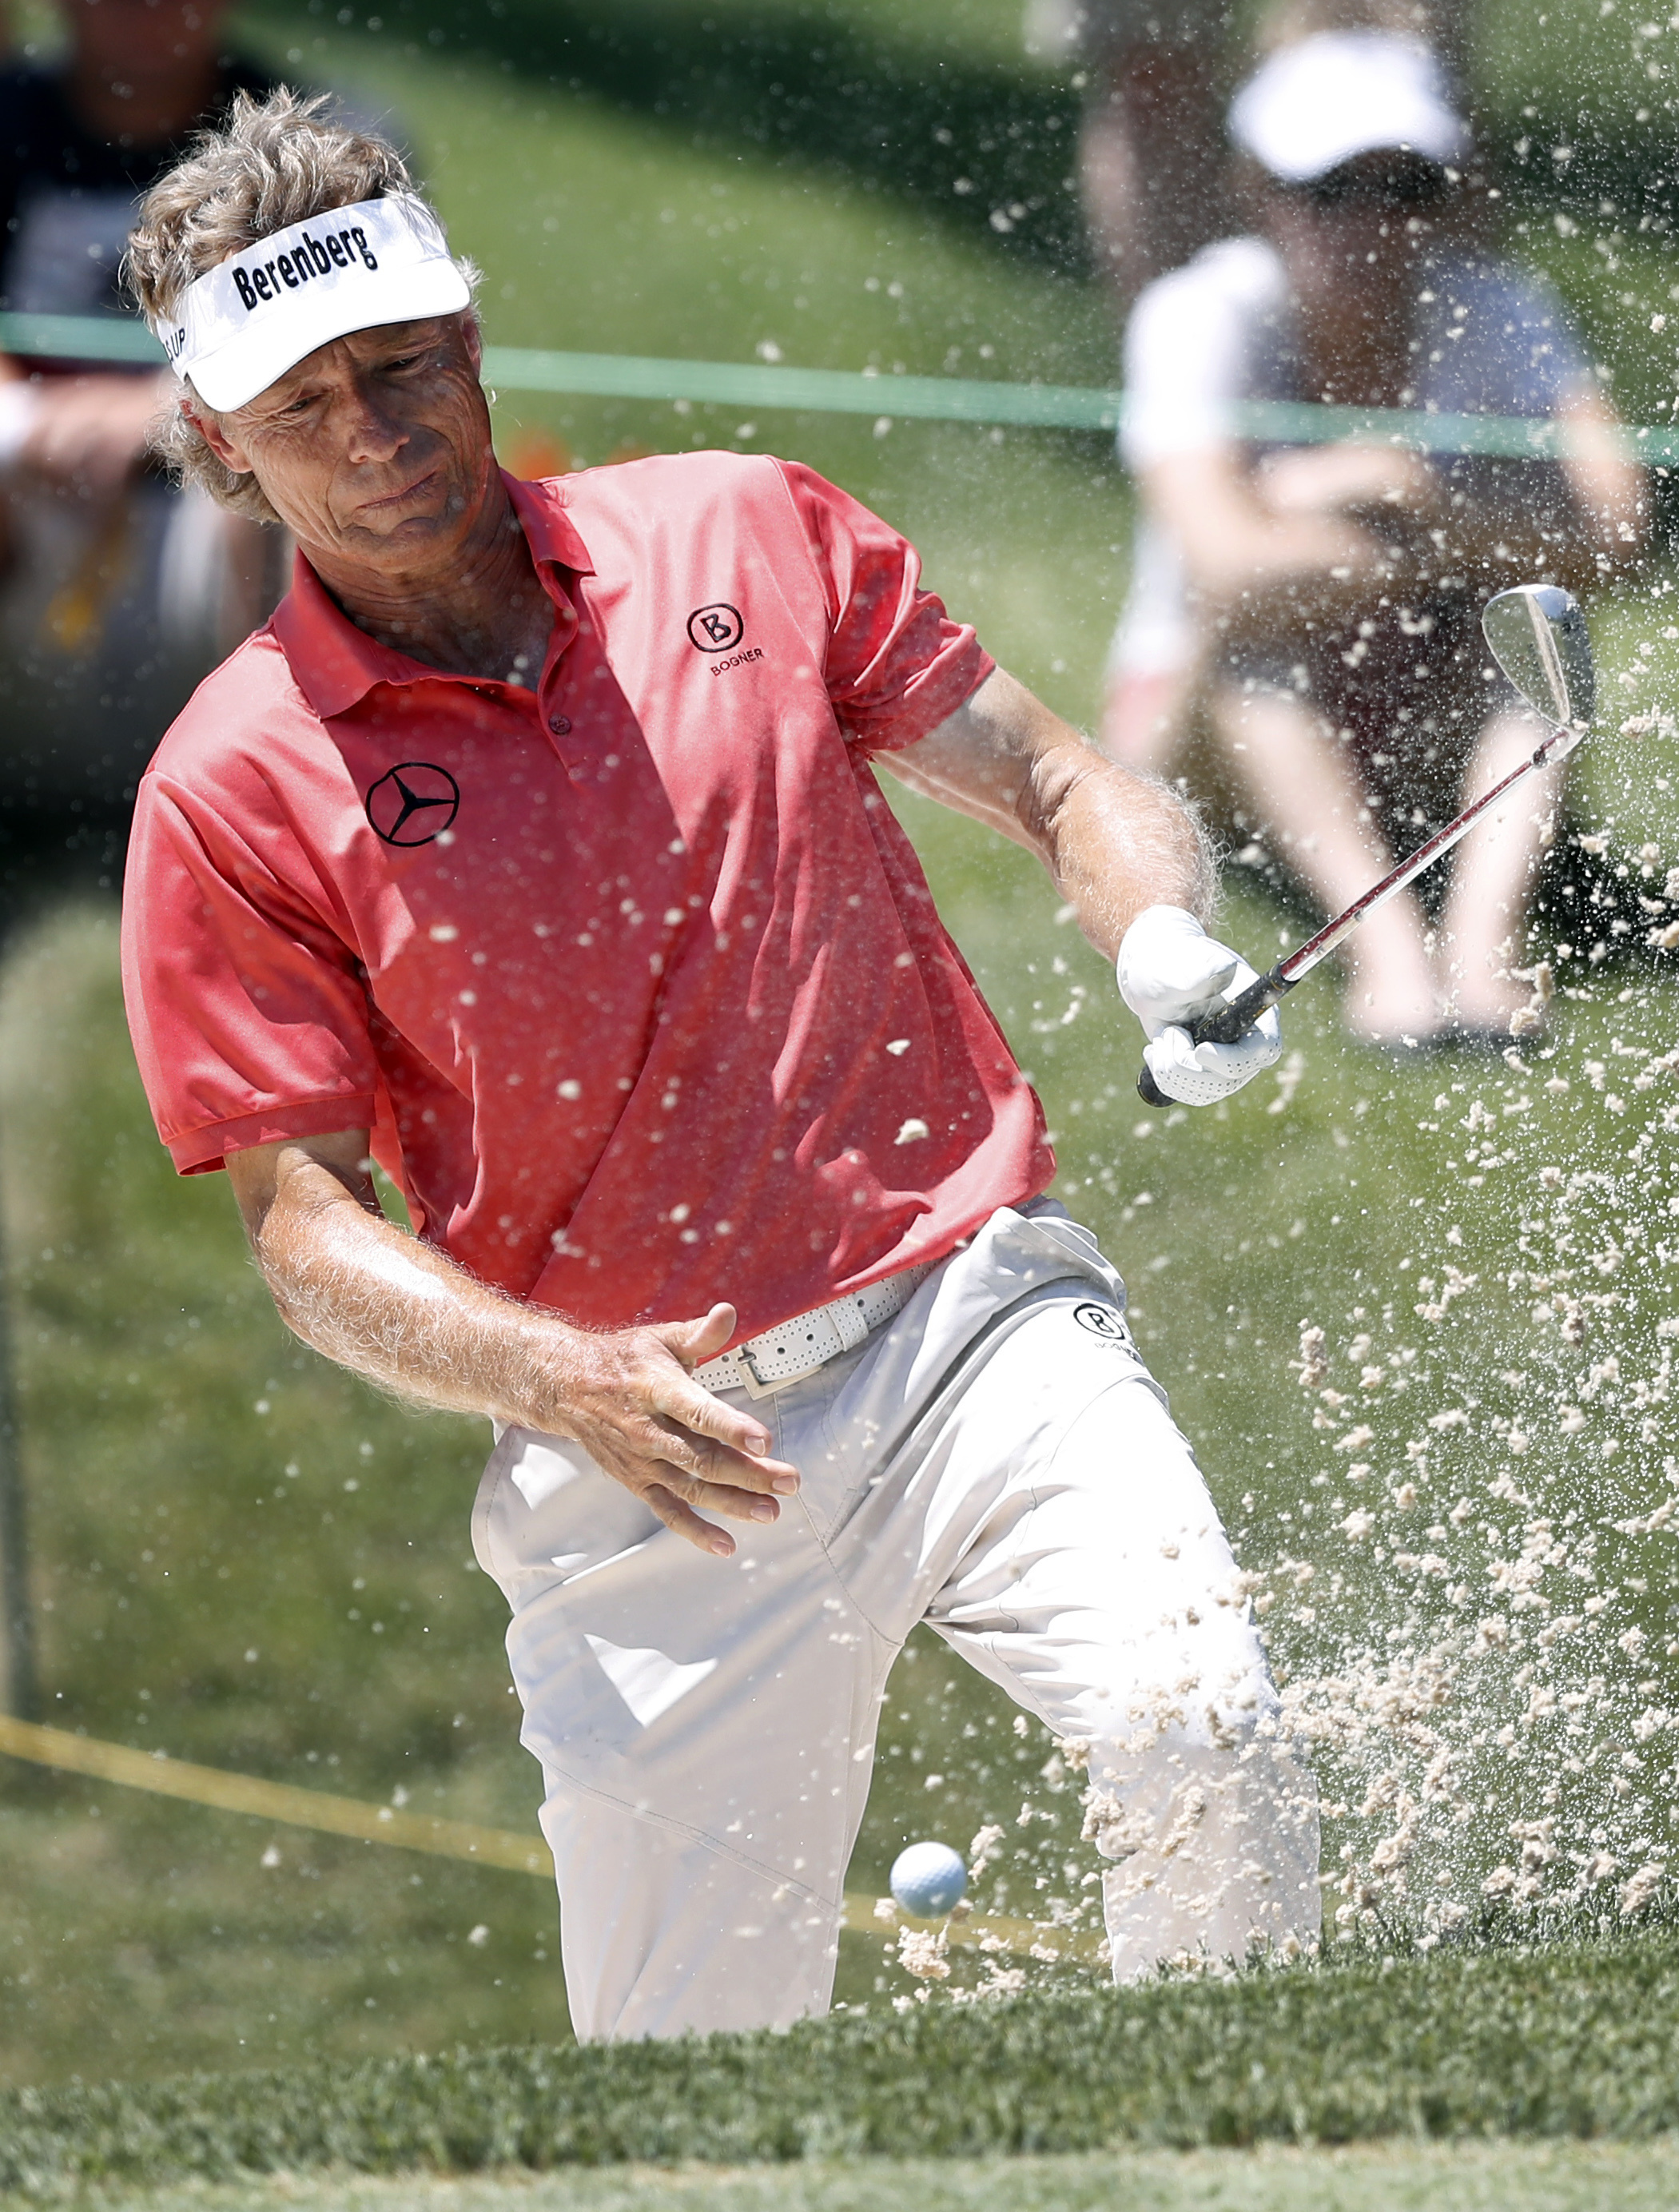 Bernhard Langer reacts to his bunker shot on the ninth hole during the second round of the PGA Tour Champions Principal Charity Classic golf tournament, Saturday, June 10, 2017, in Des Moines, Iowa. (AP Photo/Charlie Neibergall)